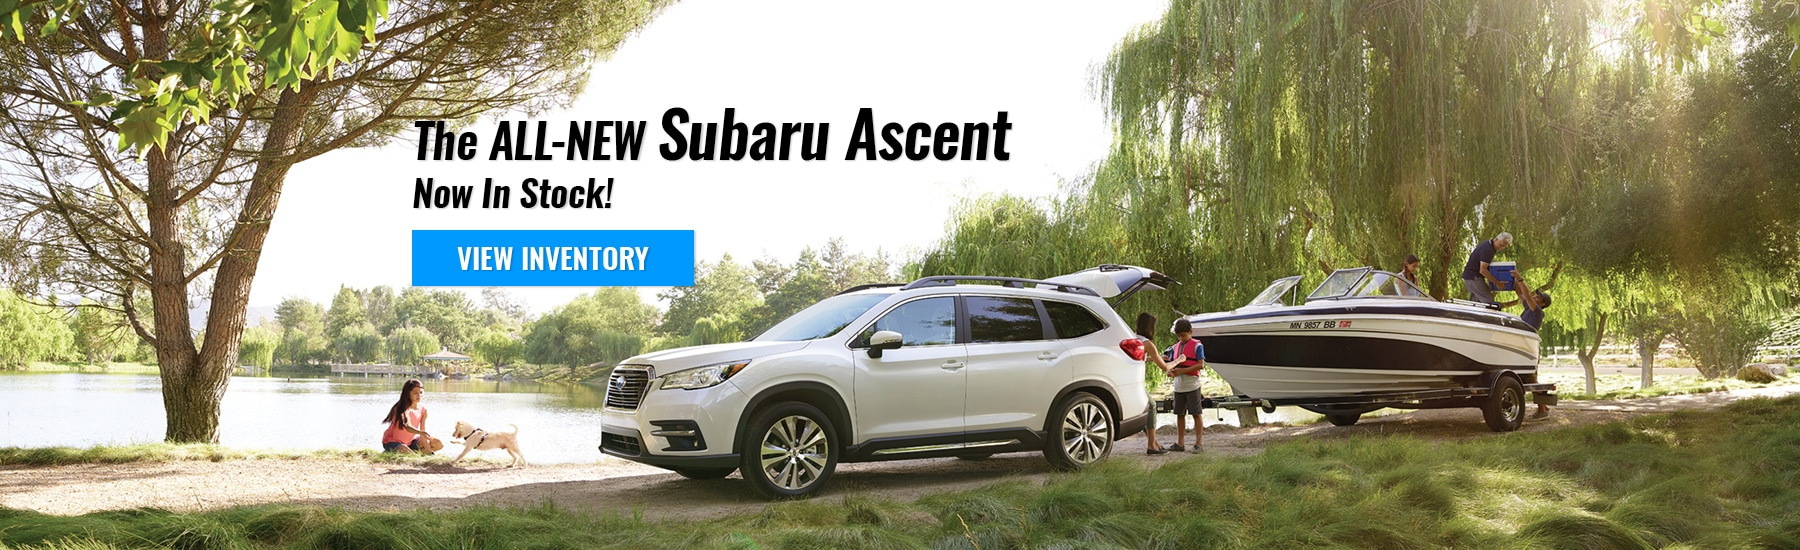 Pittsfield MA Subaru Dealer Serving Bennington VT, West Springfield